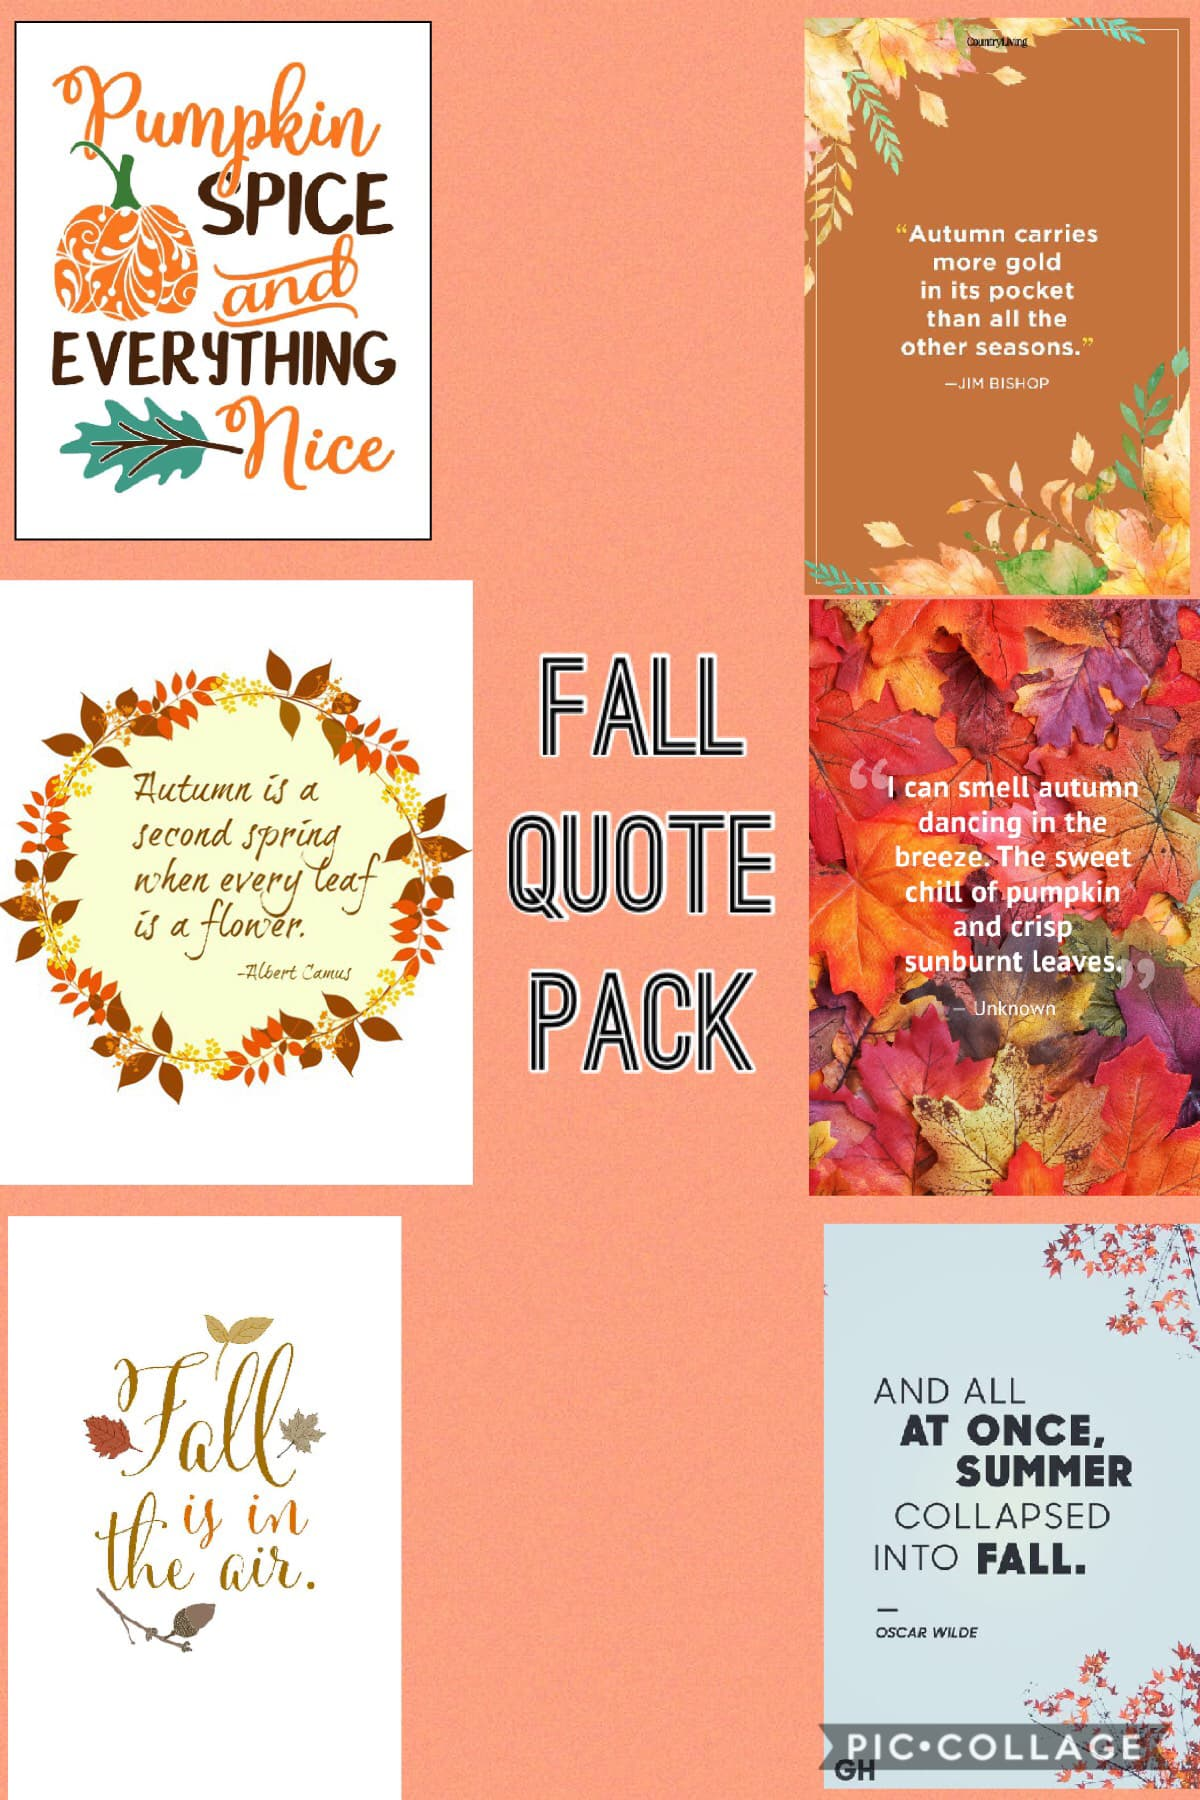 Fall Quote Pack #2 !! Hope y'all like it! Just tap on the collage to collect the quotes or take a screenshot 🎉🎈 THANK YOU SOOO MUCH FOR 200 FOLLOWERS!! 🥳🥳